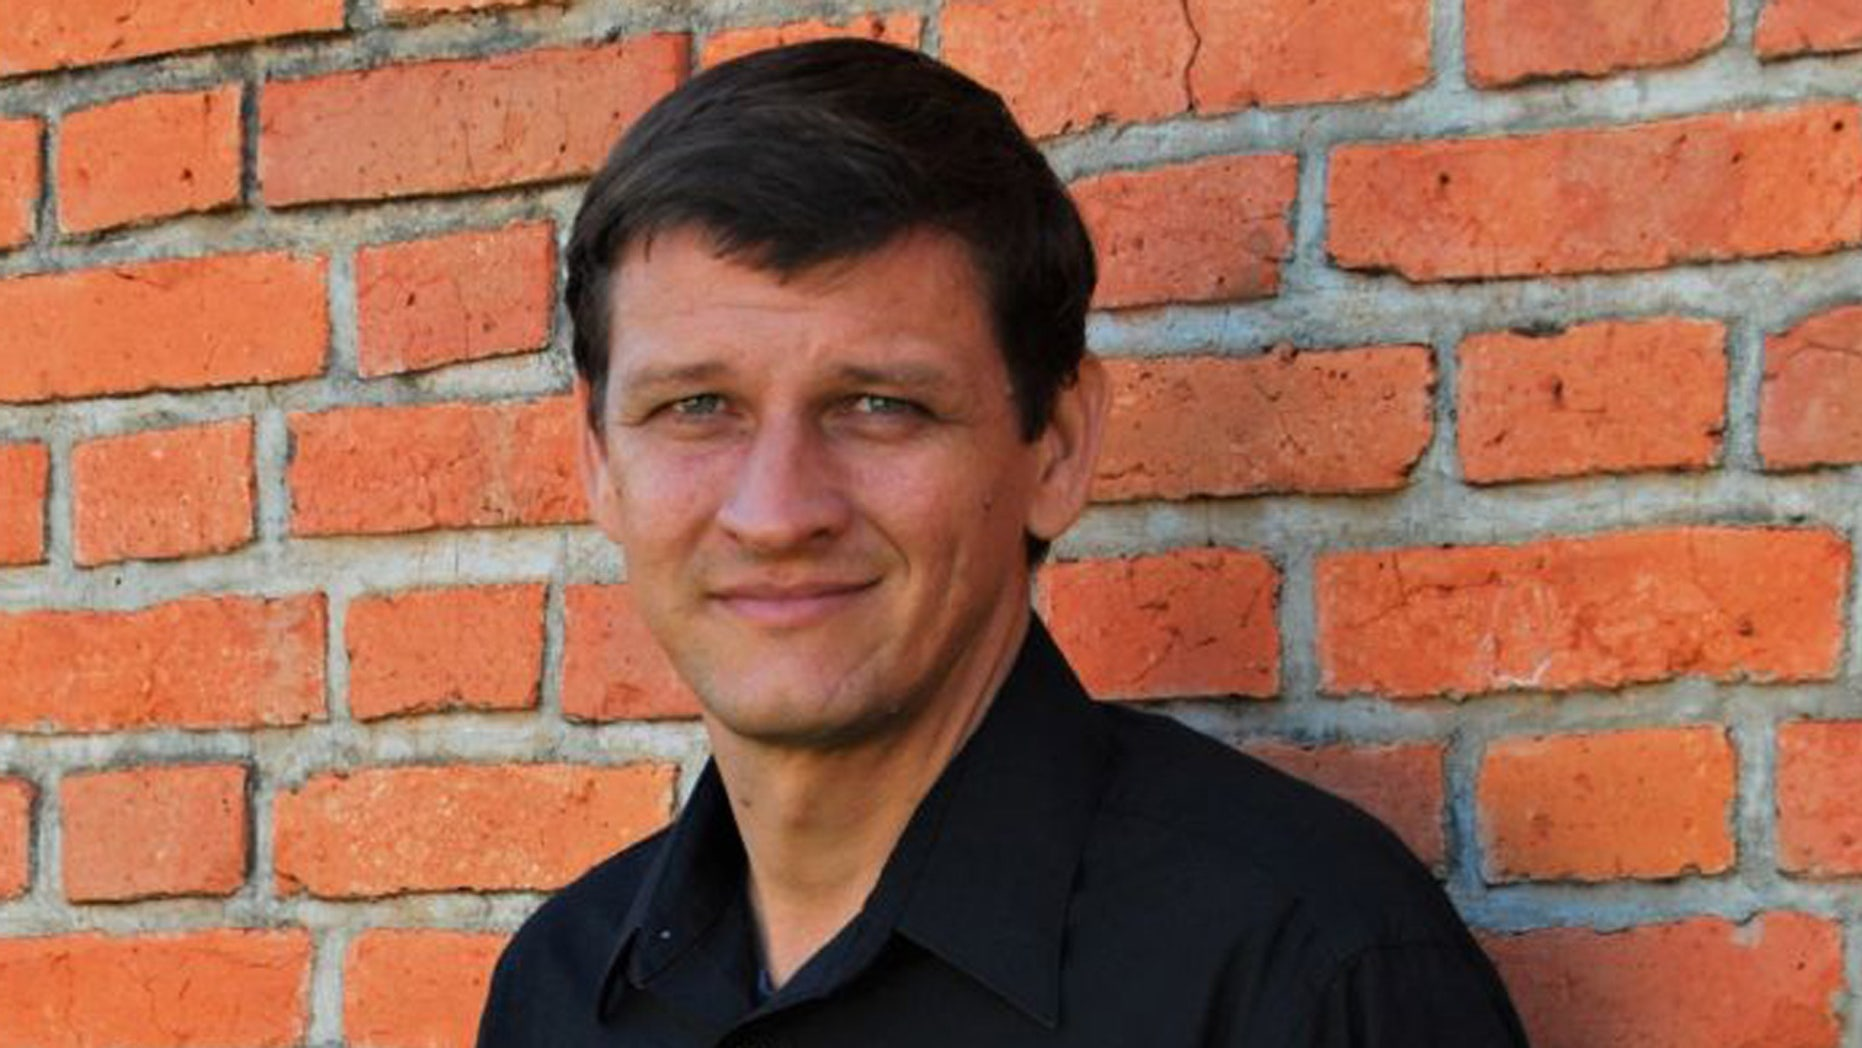 American Christian missionary, Wayne Goddard, 50, was killed in Paraguay last week, according to the mission organization that sent him.